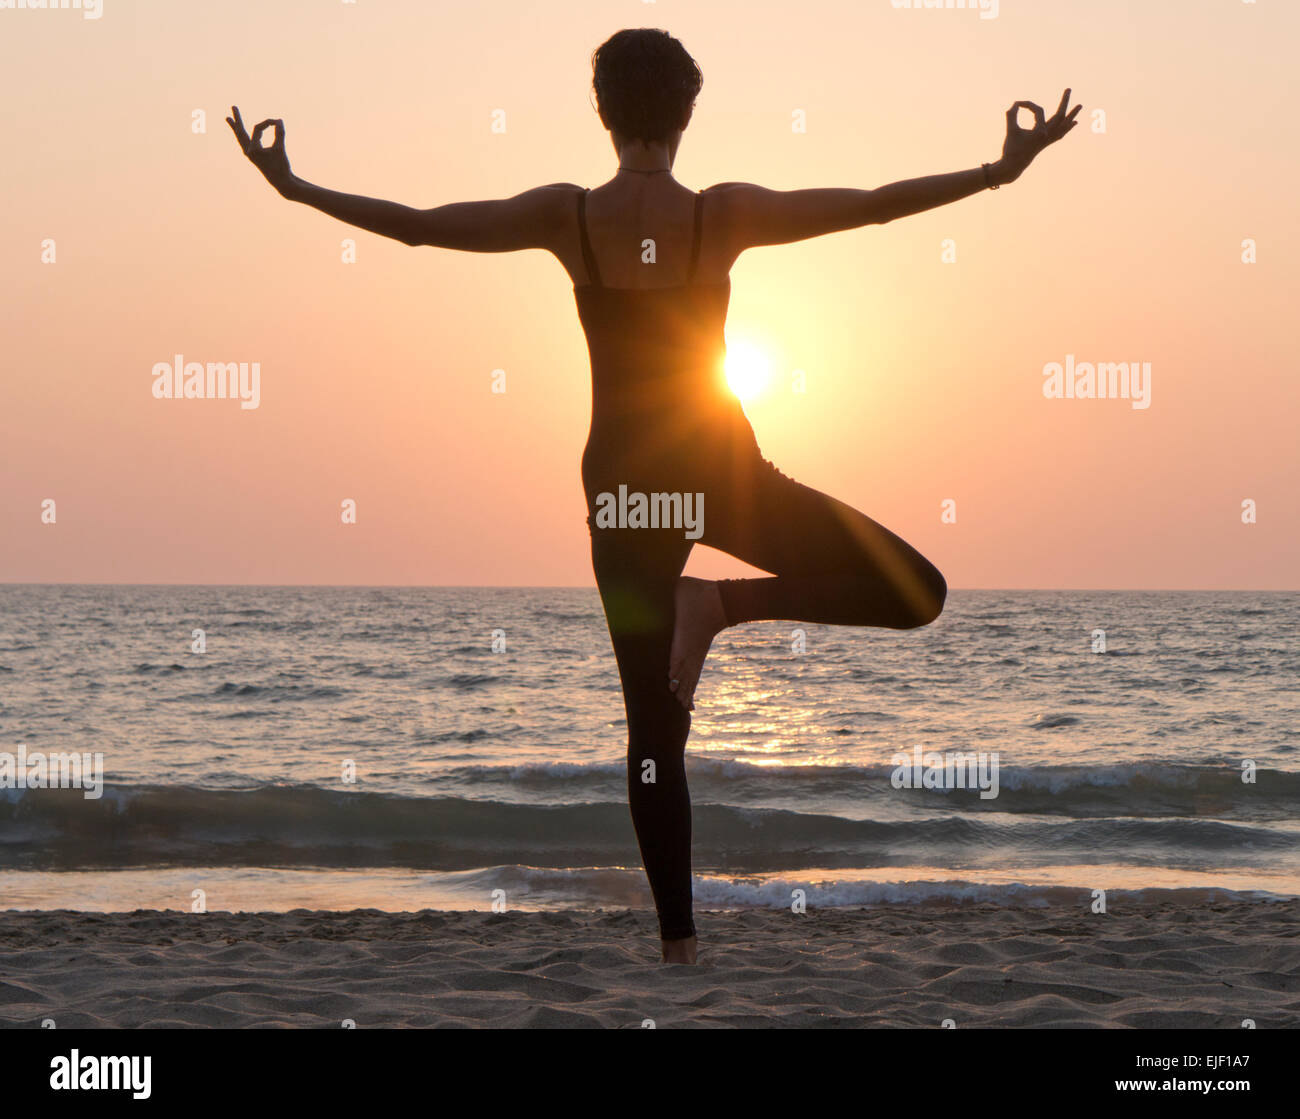 A woman practicing yoga on a beach at sunset - Stock Image